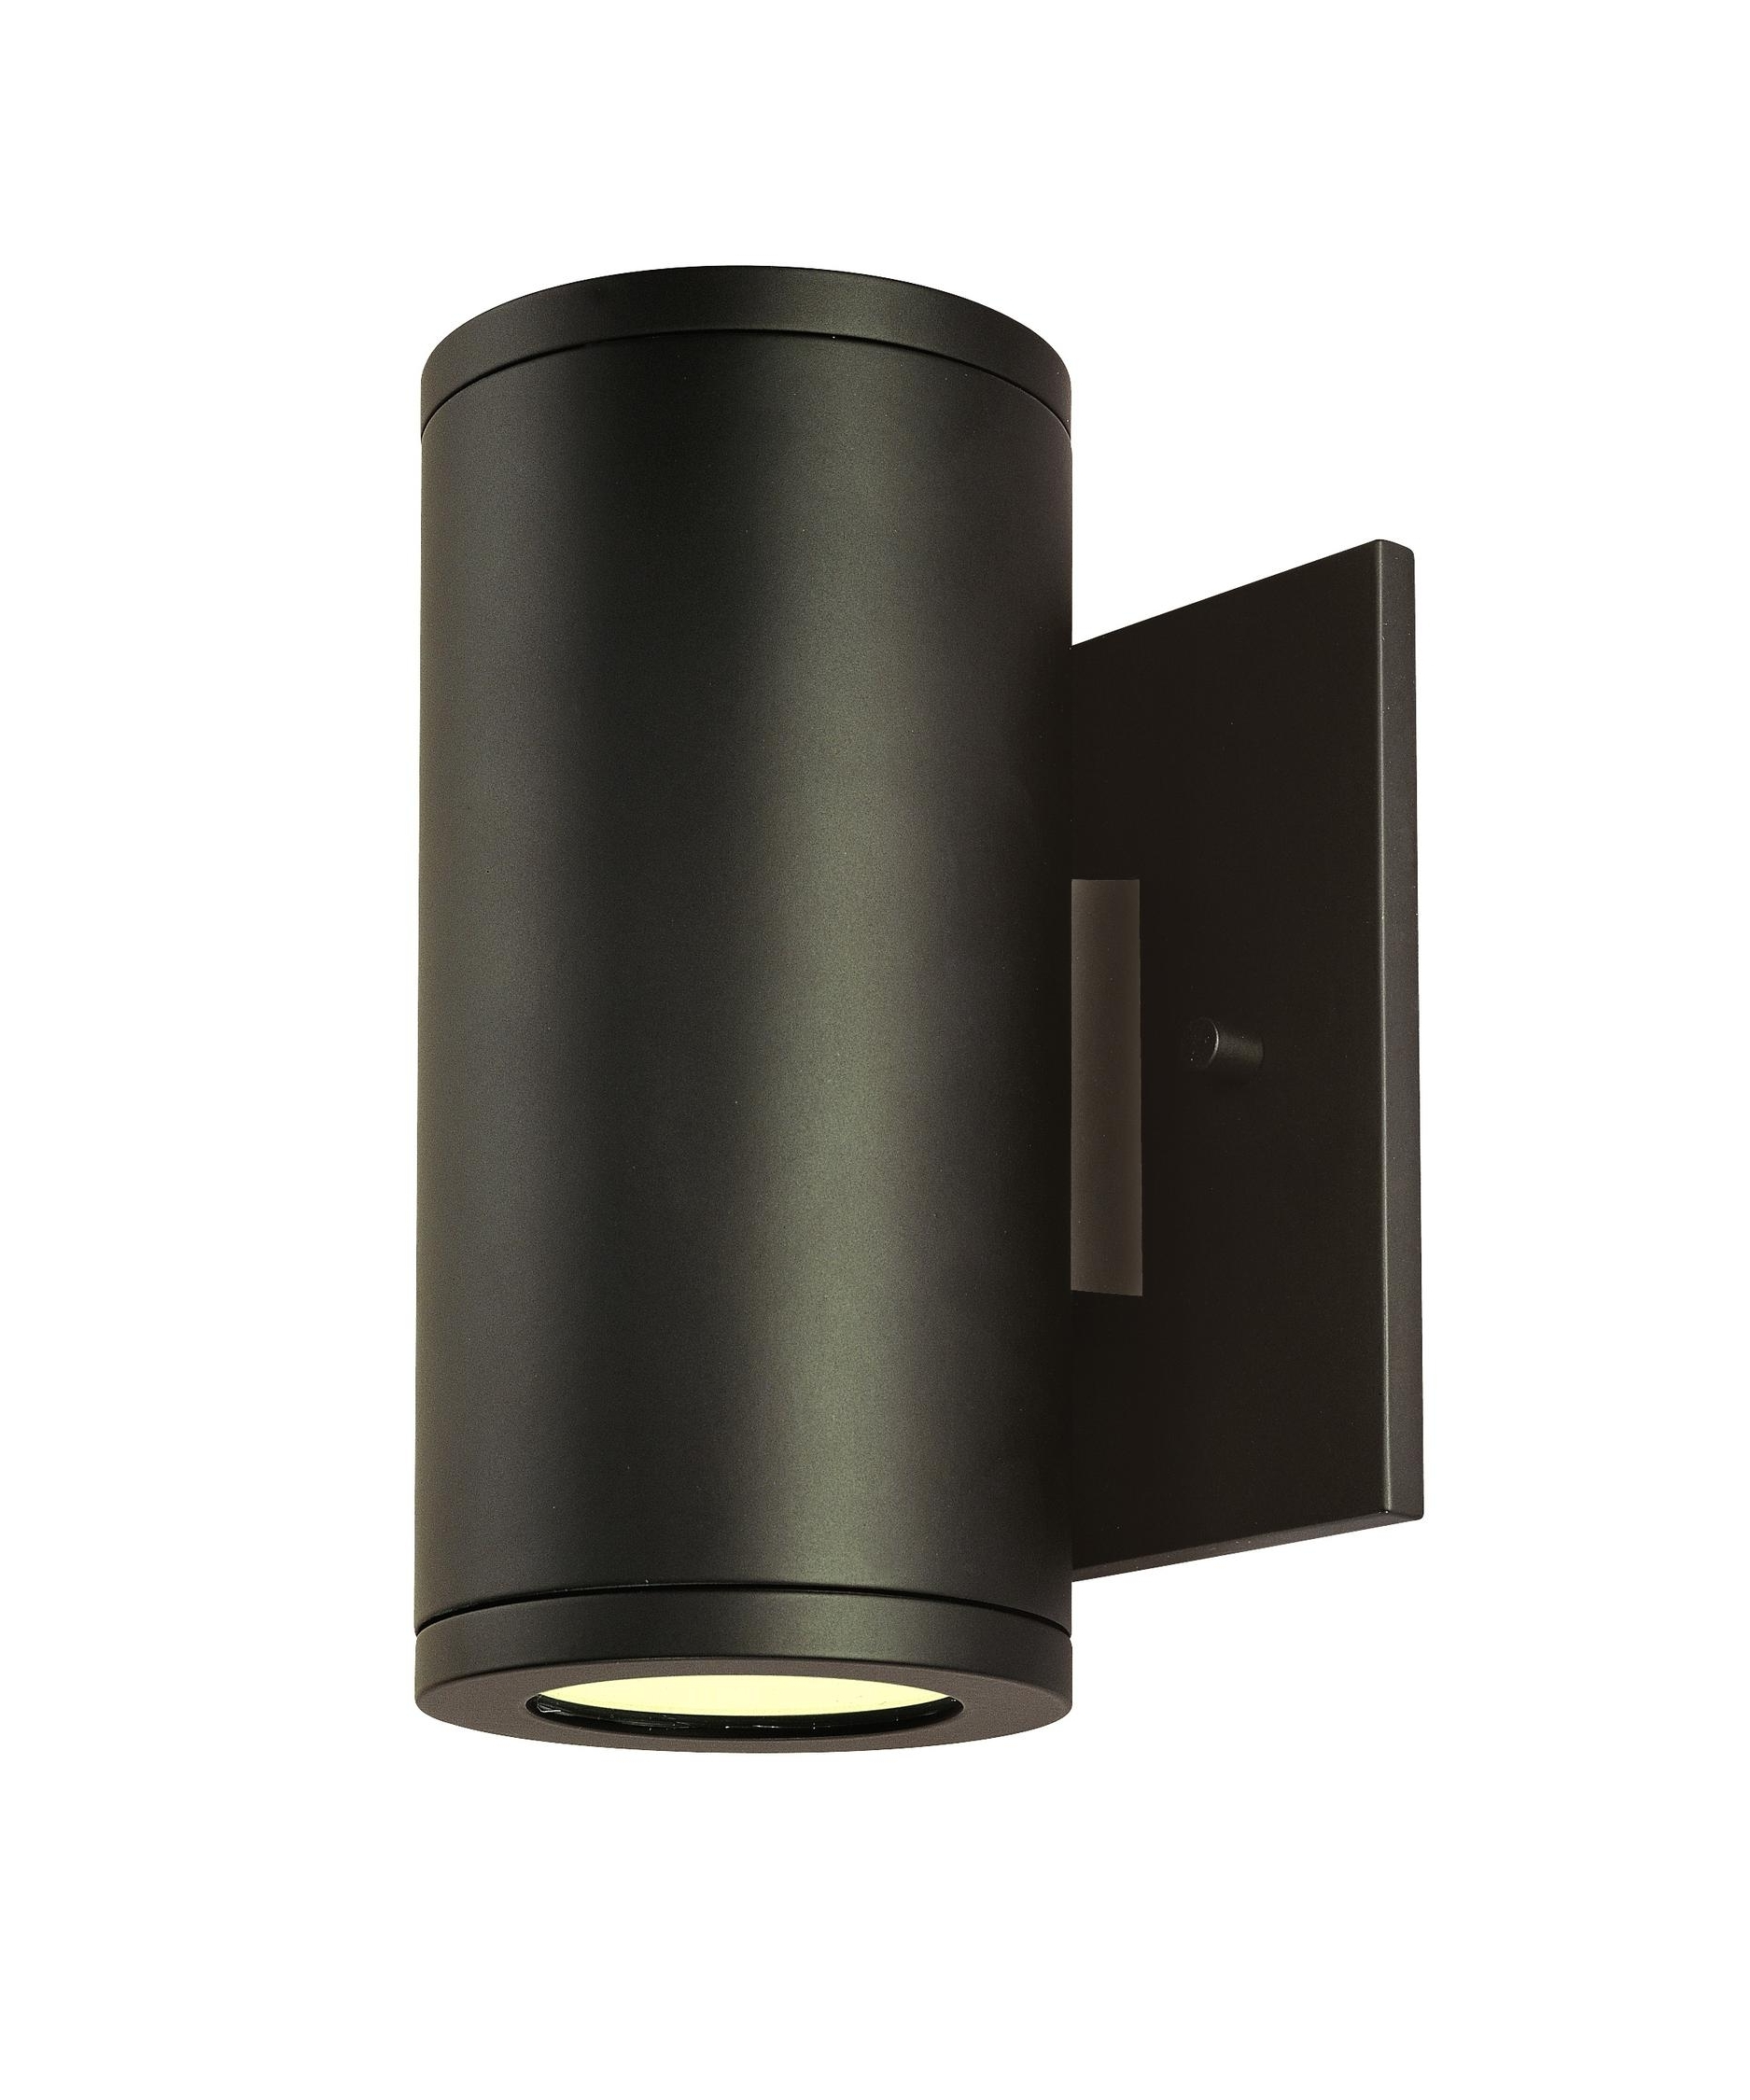 Commercial Led Outdoor Wall Lighting In Newest Exterior Wall Mounted Light Fixtures Commercial Ideas (View 18 of 20)